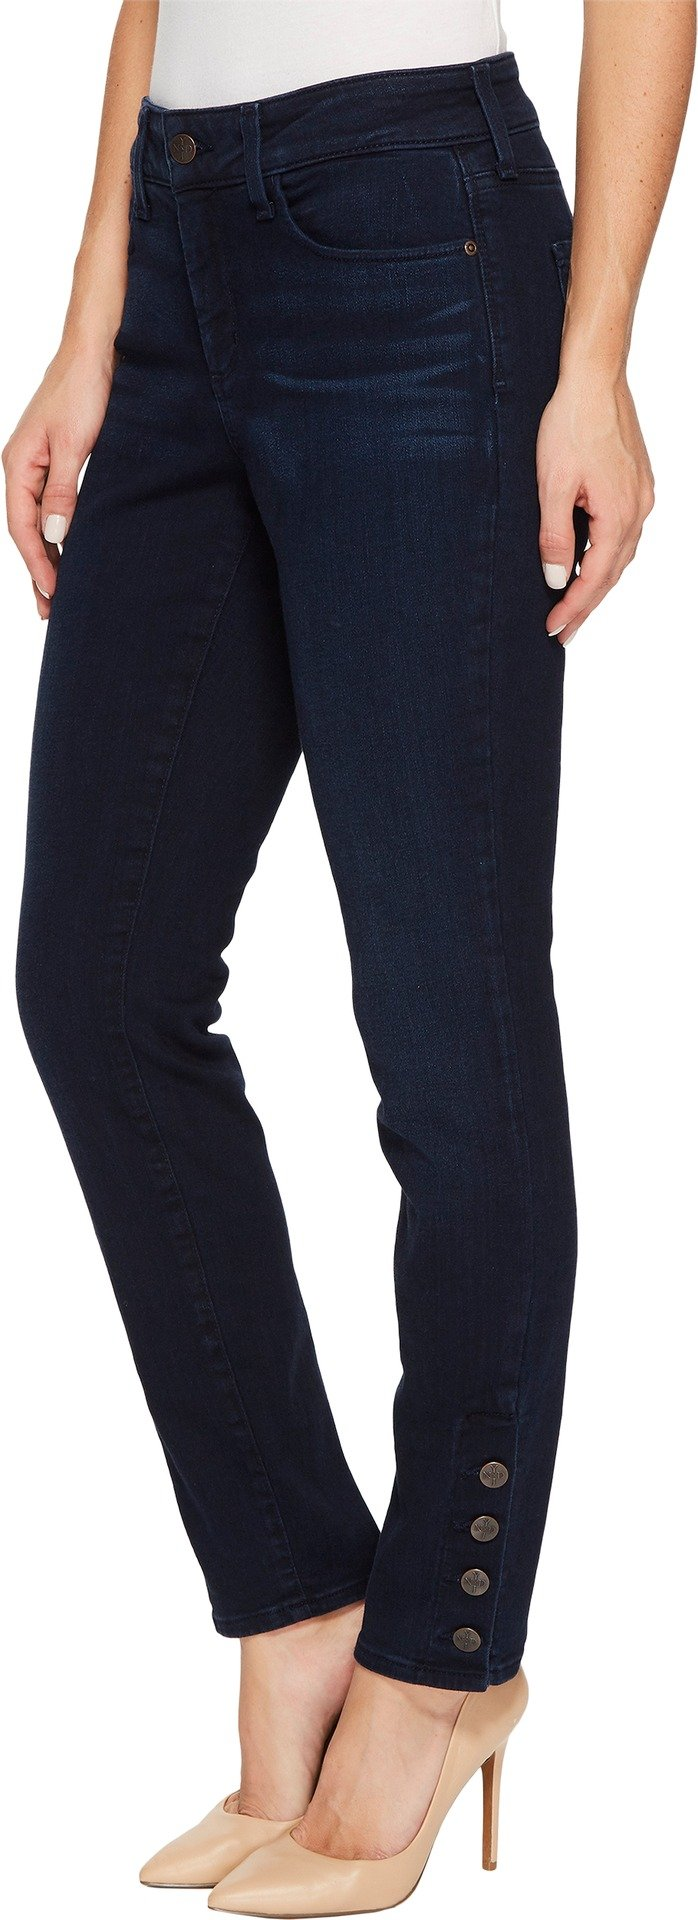 NYDJ Women's Ami Skinny Legging Jeans, Sinclair with Exposed Sideseam Buttons, 8 by NYDJ